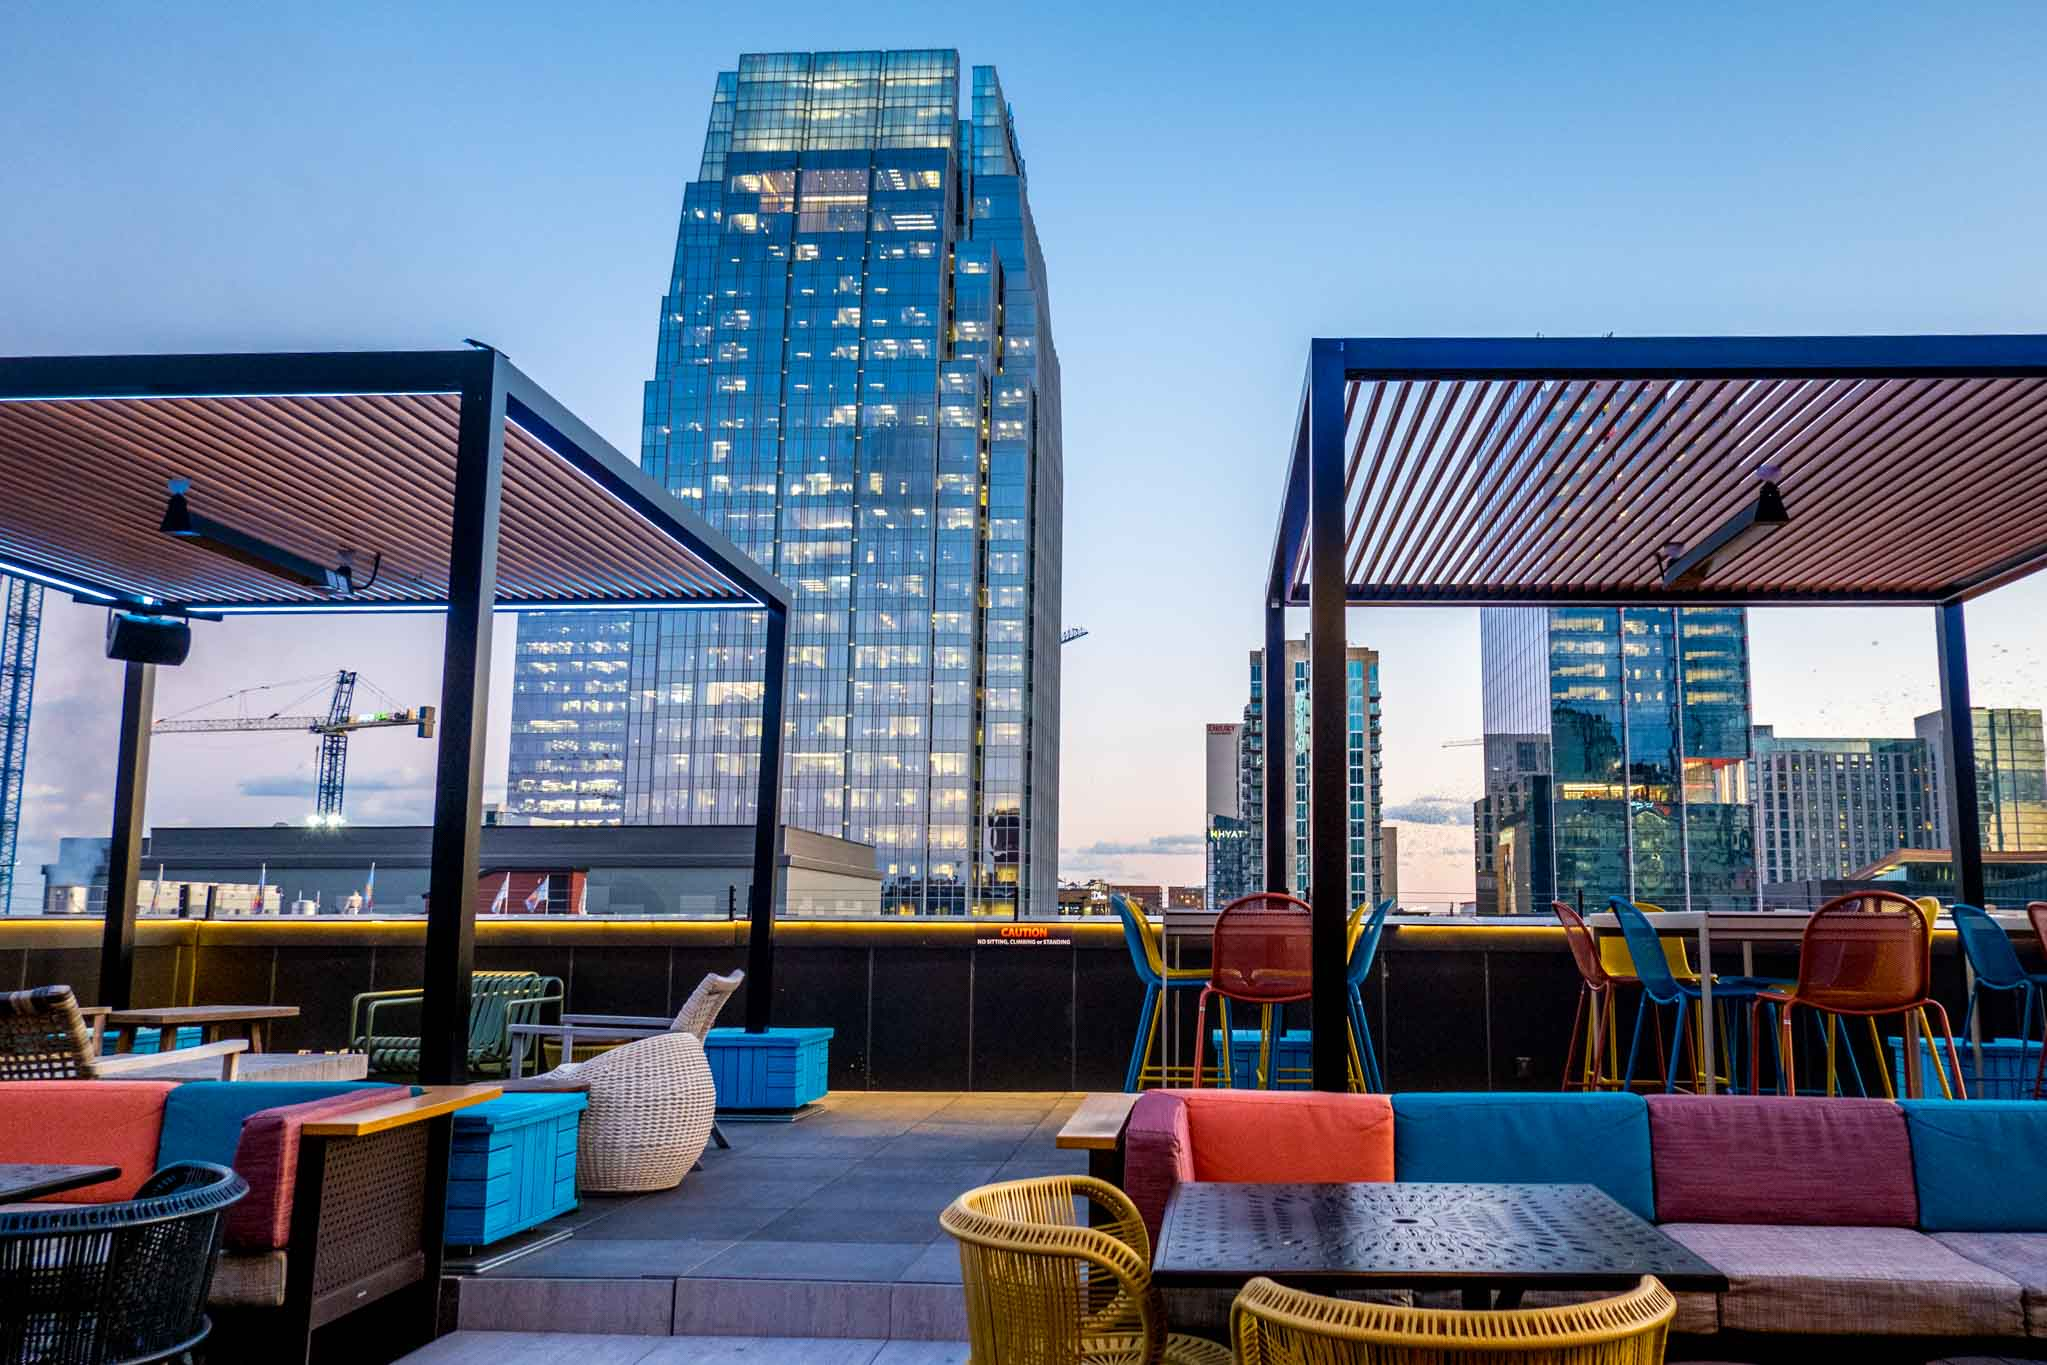 Rooftop bar at sunset featuring seats and a view over Broadway